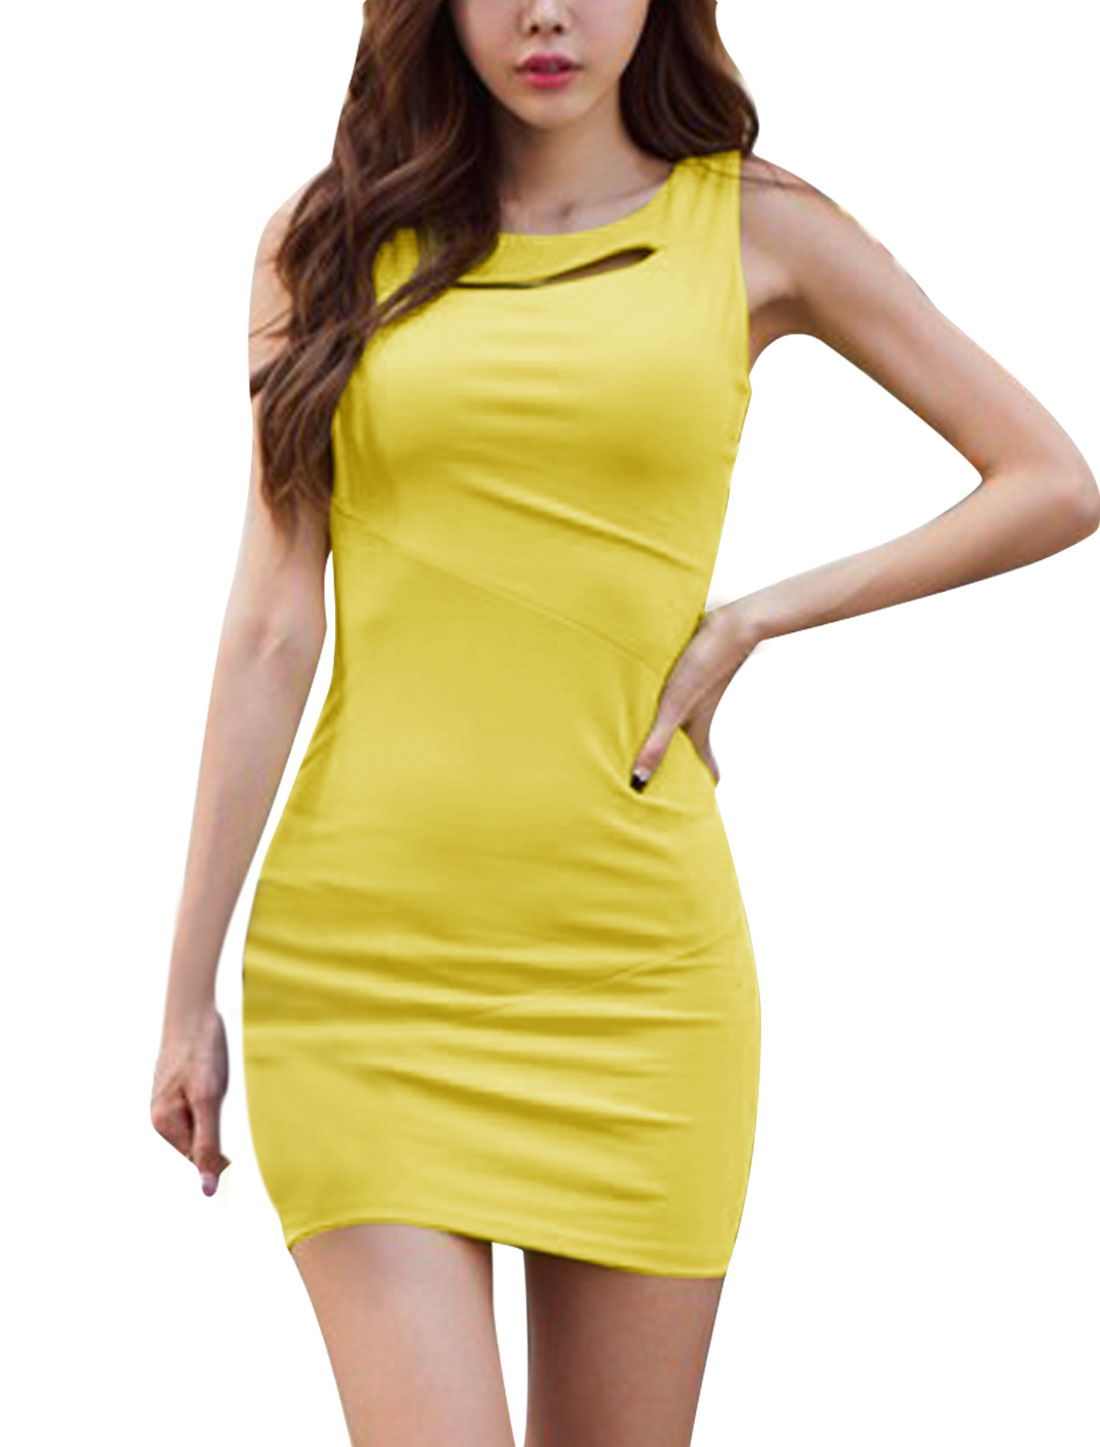 Women Round Neck Cutout Front Design Slim Fit Yellow Sexy Mini Dress XS